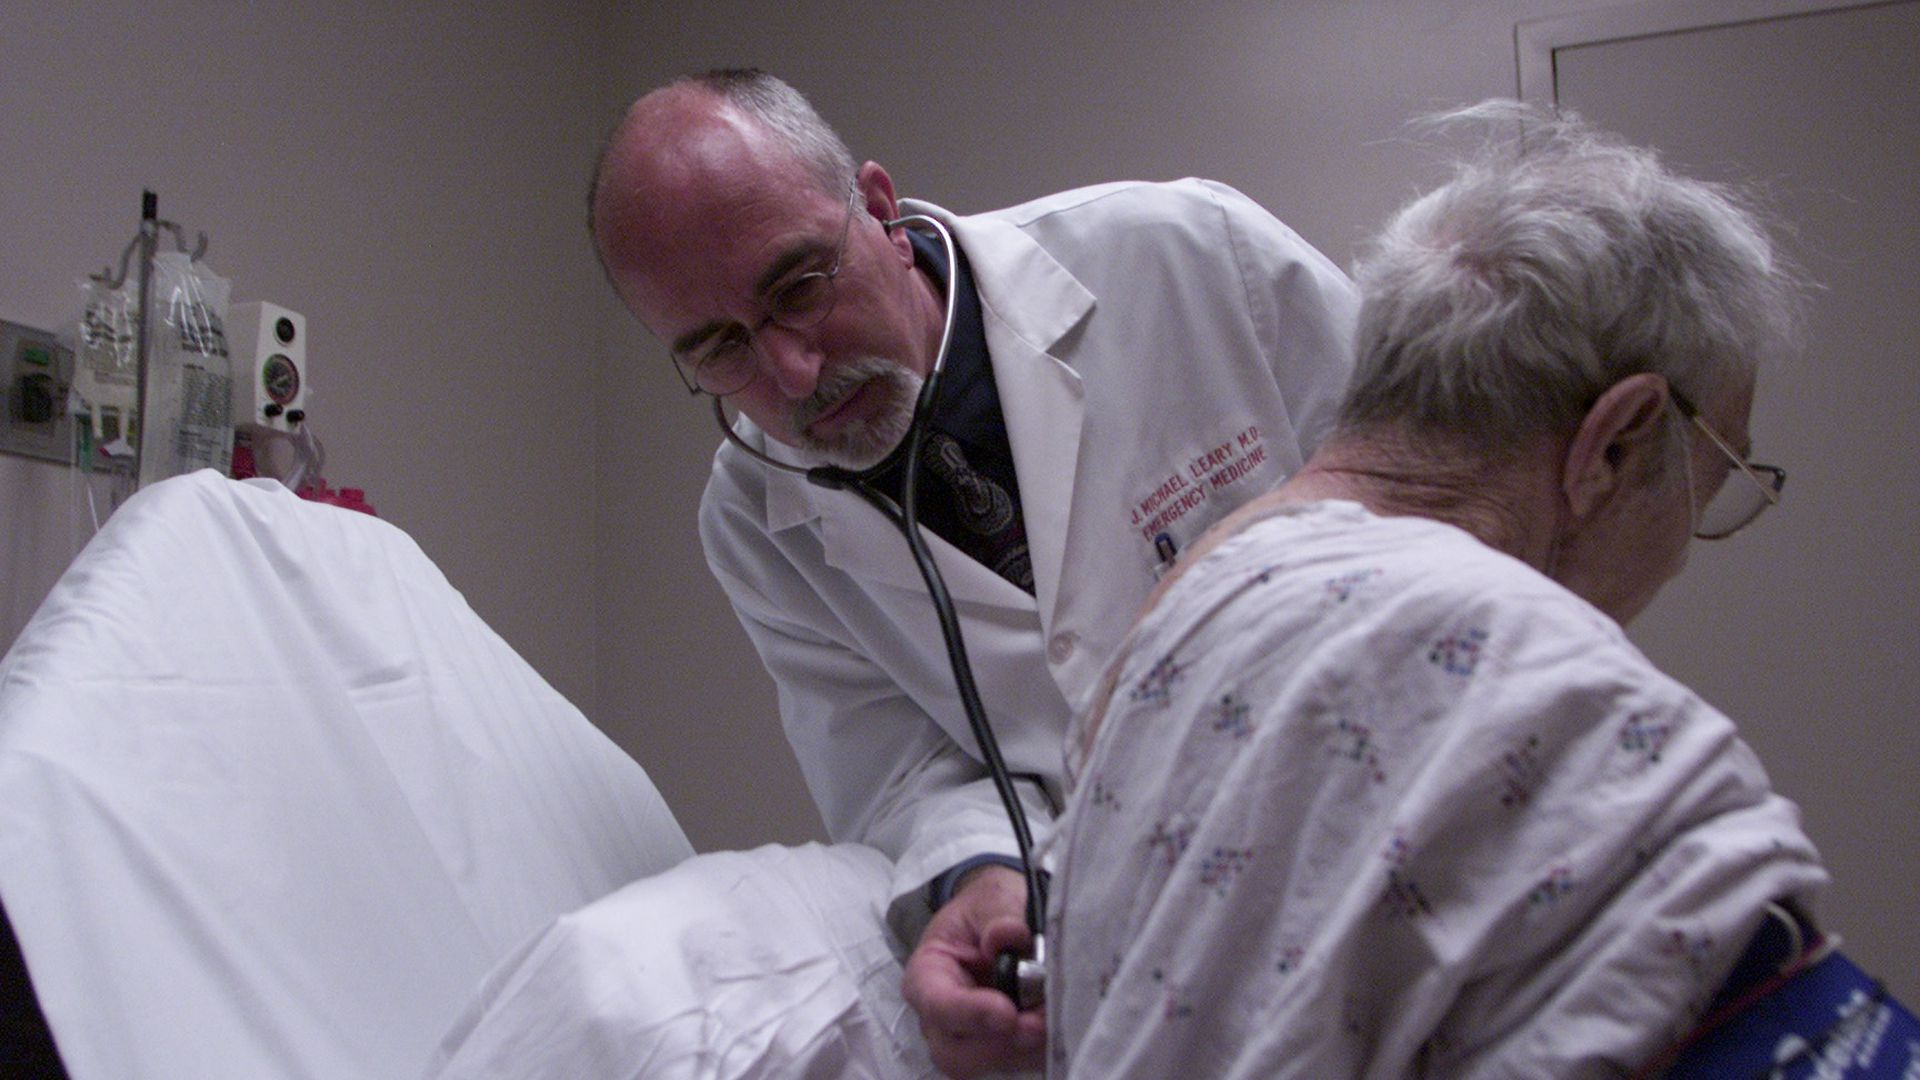 A doctor listens to an elderly patient